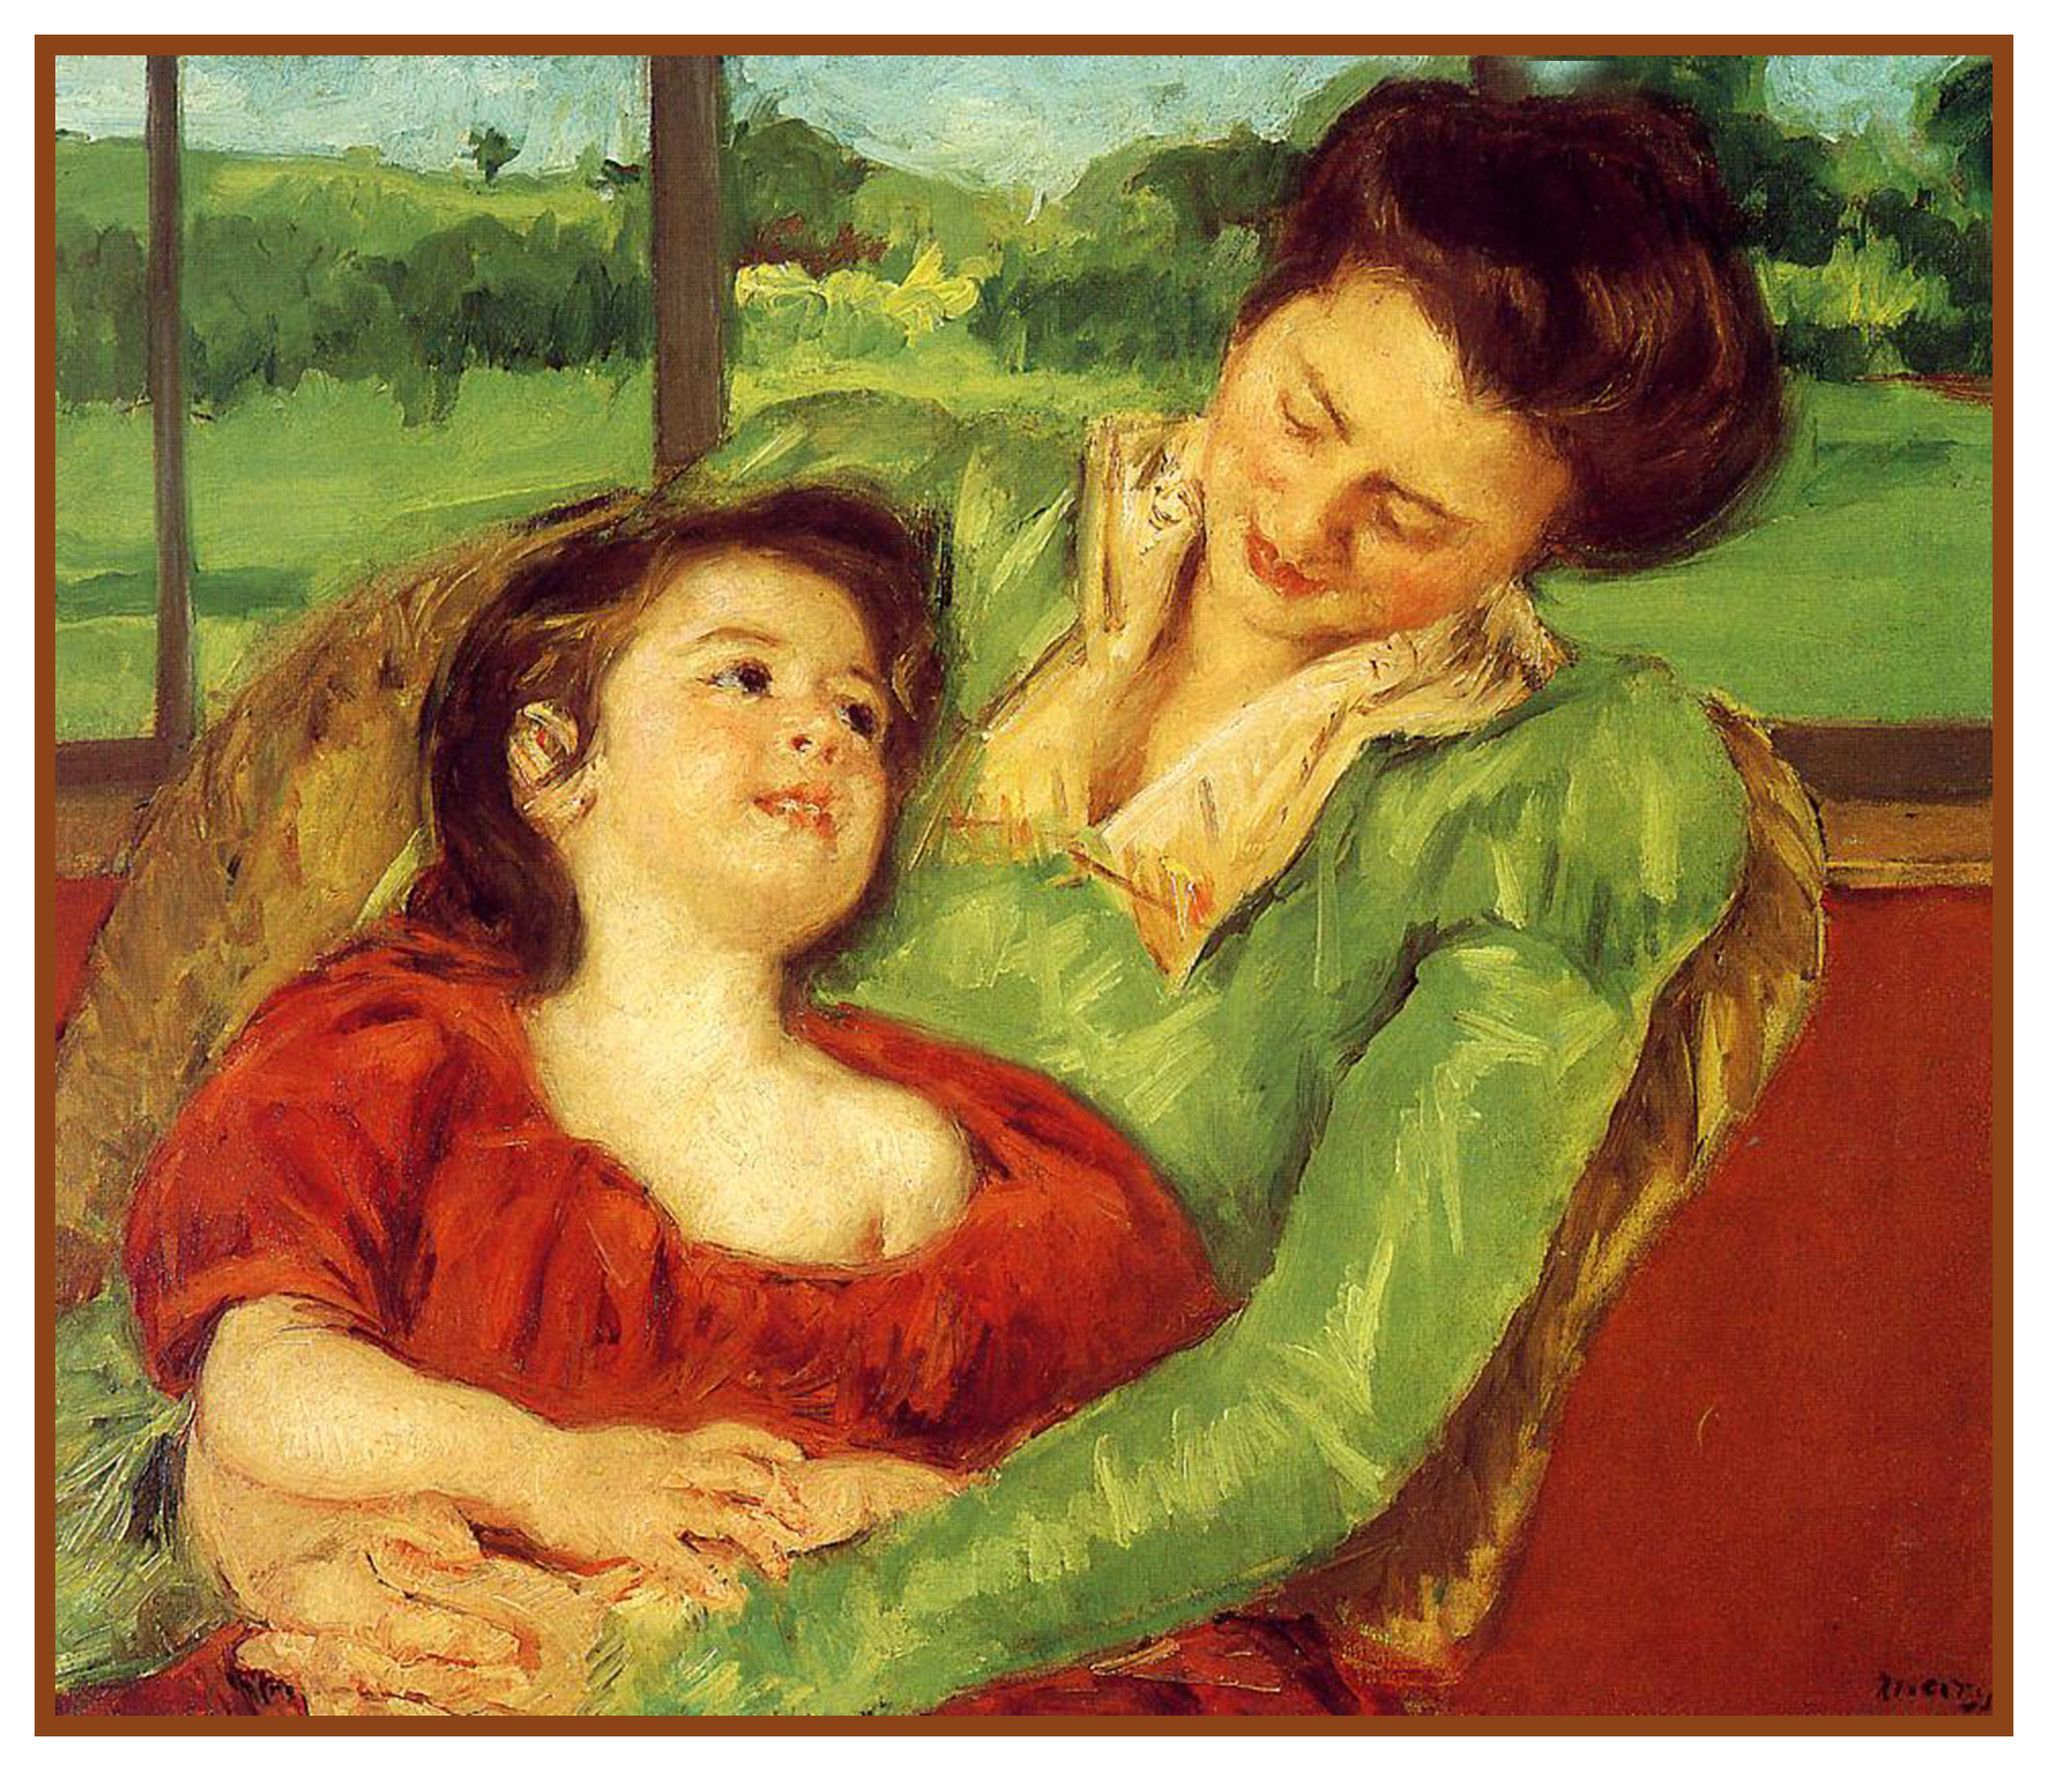 Rene And Margot At The Window By American Impressionist Artist Mary Cassatt Counted Cross Stitch Or